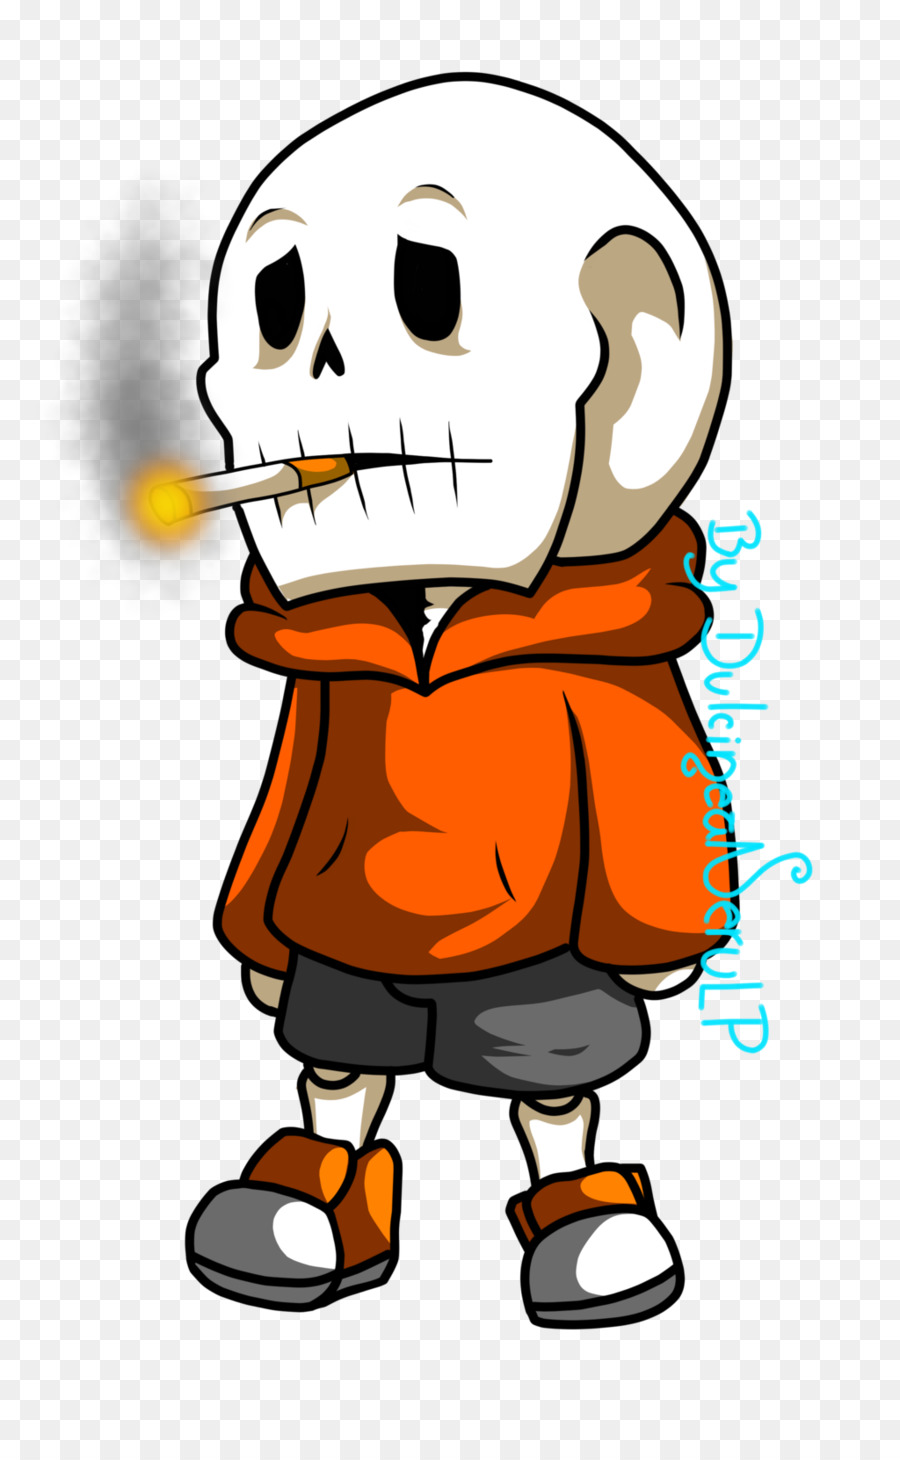 Undertale Thumb png download - 1024*1657 - Free Transparent